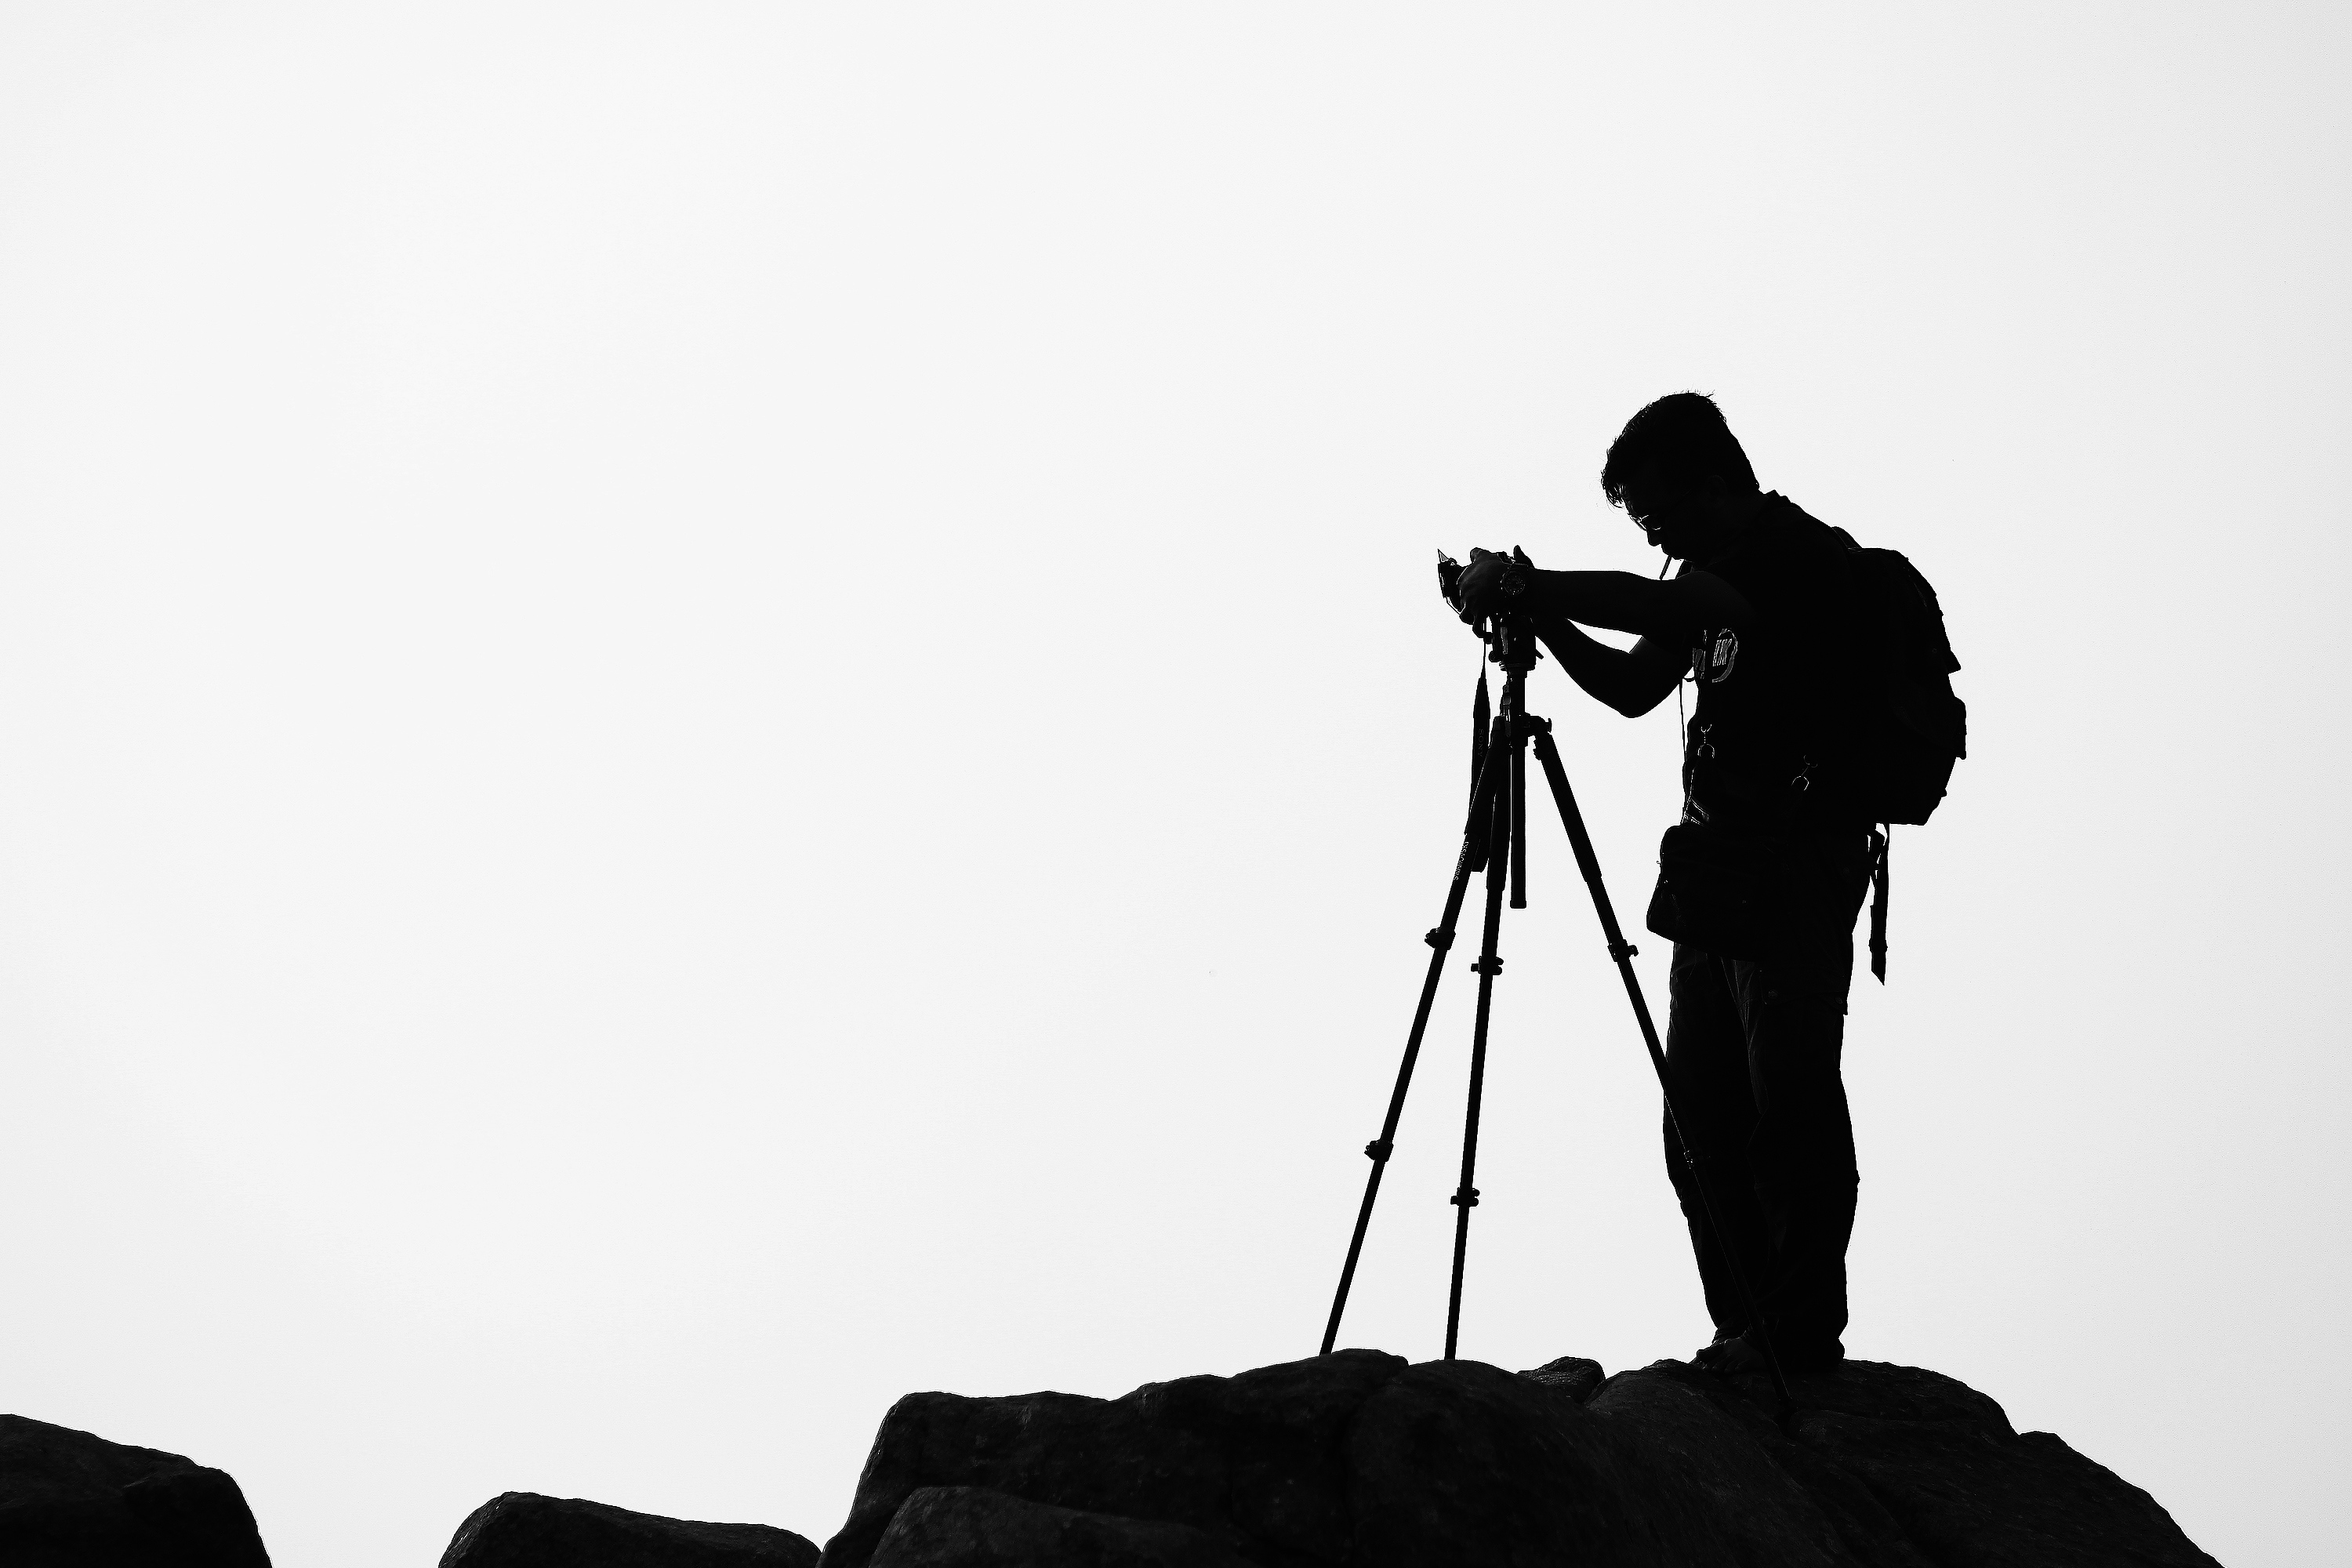 Free Photography Stock Silhouette Photographer Free Stock Photo Negativespace